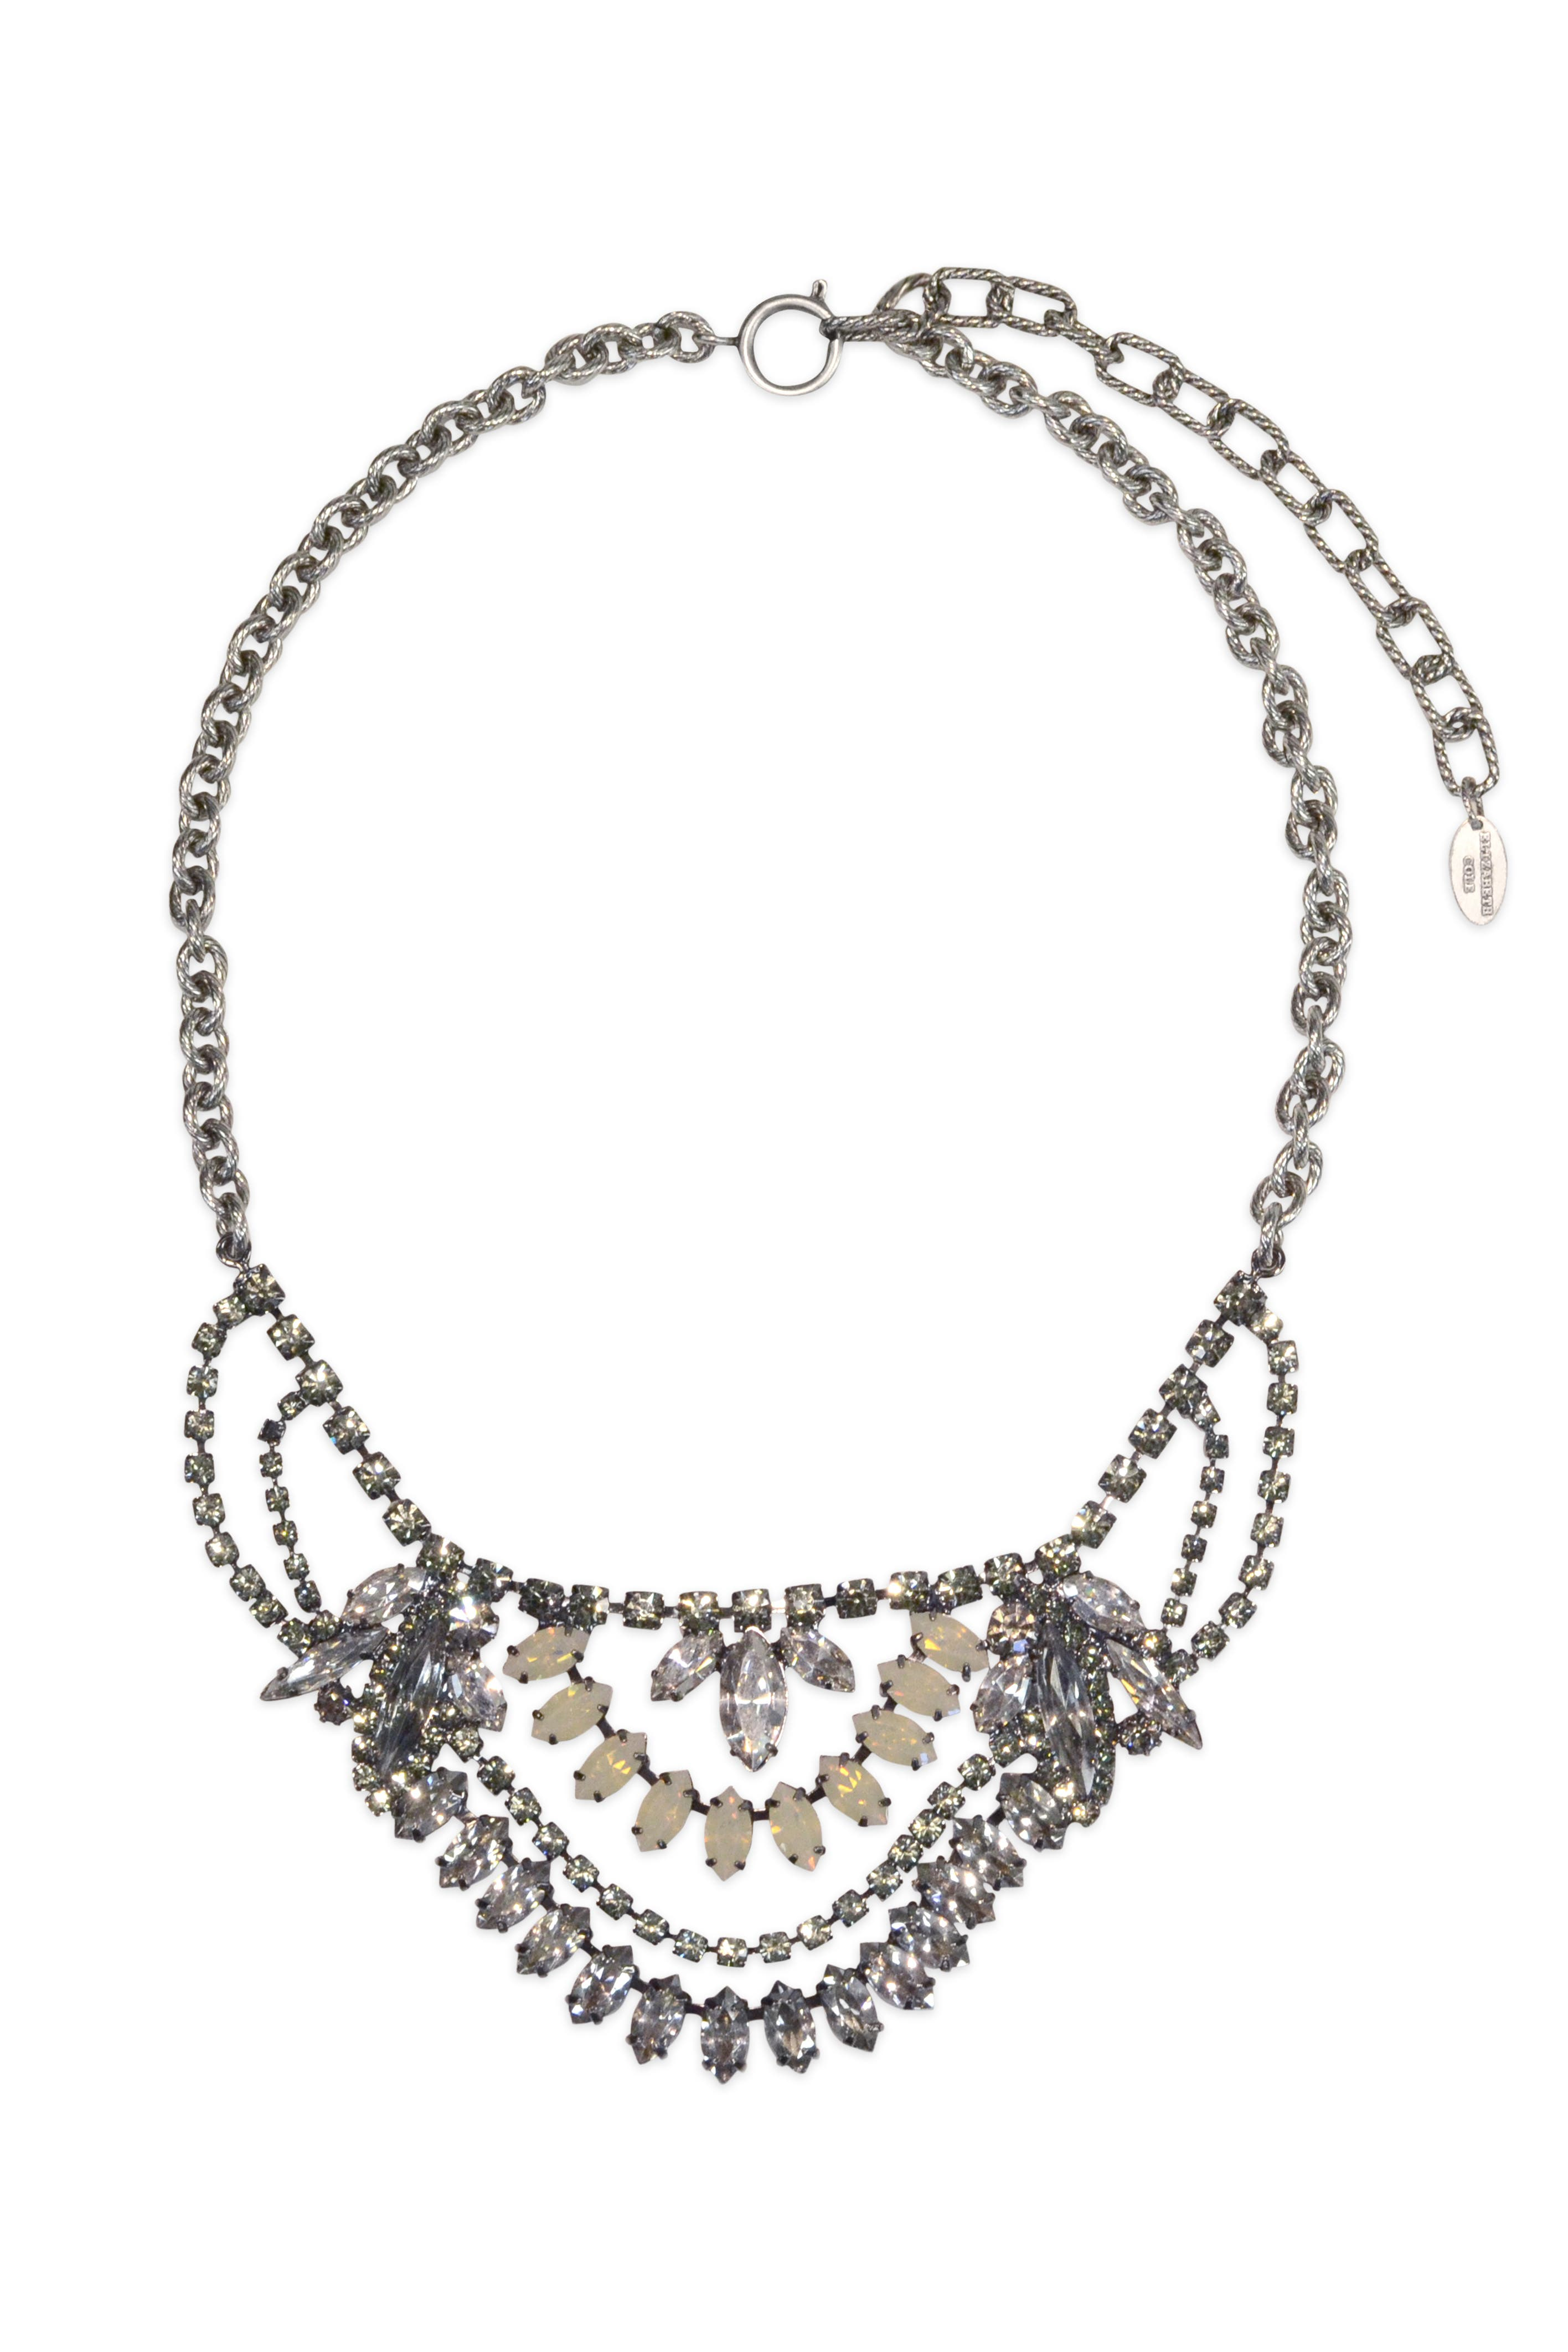 Crystal Nouveau Necklace by Elizabeth Cole